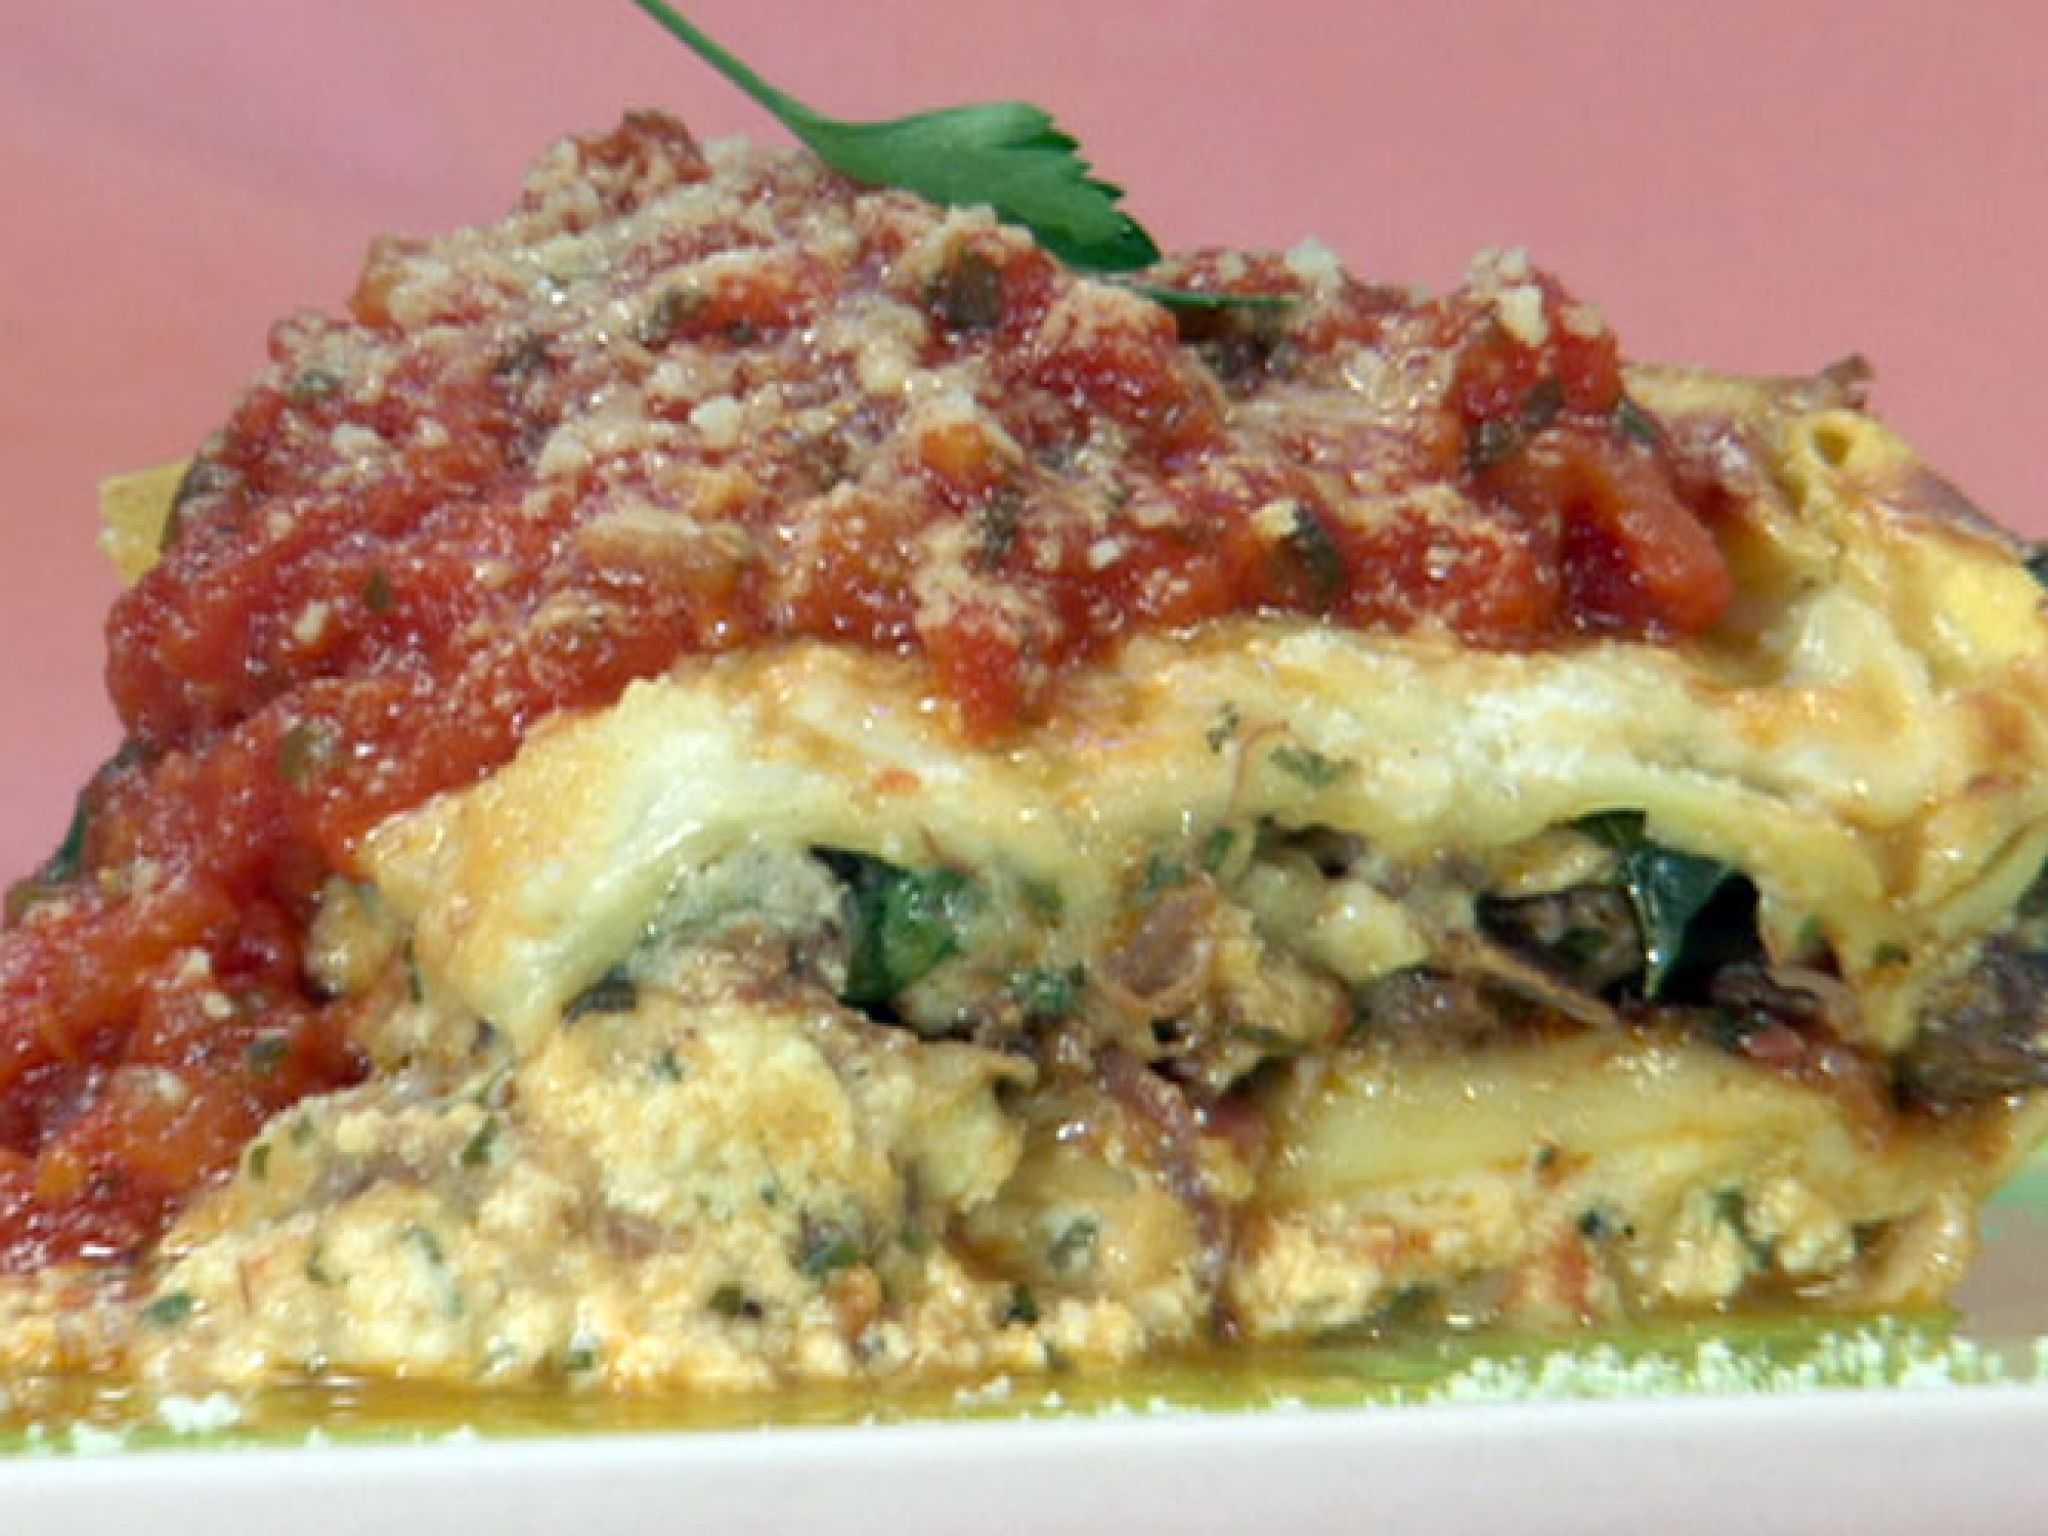 Lasagna recipe bobby bechamel and ricotta lasagna recipe from bobby flay via food network w bechamel ricotta forumfinder Image collections